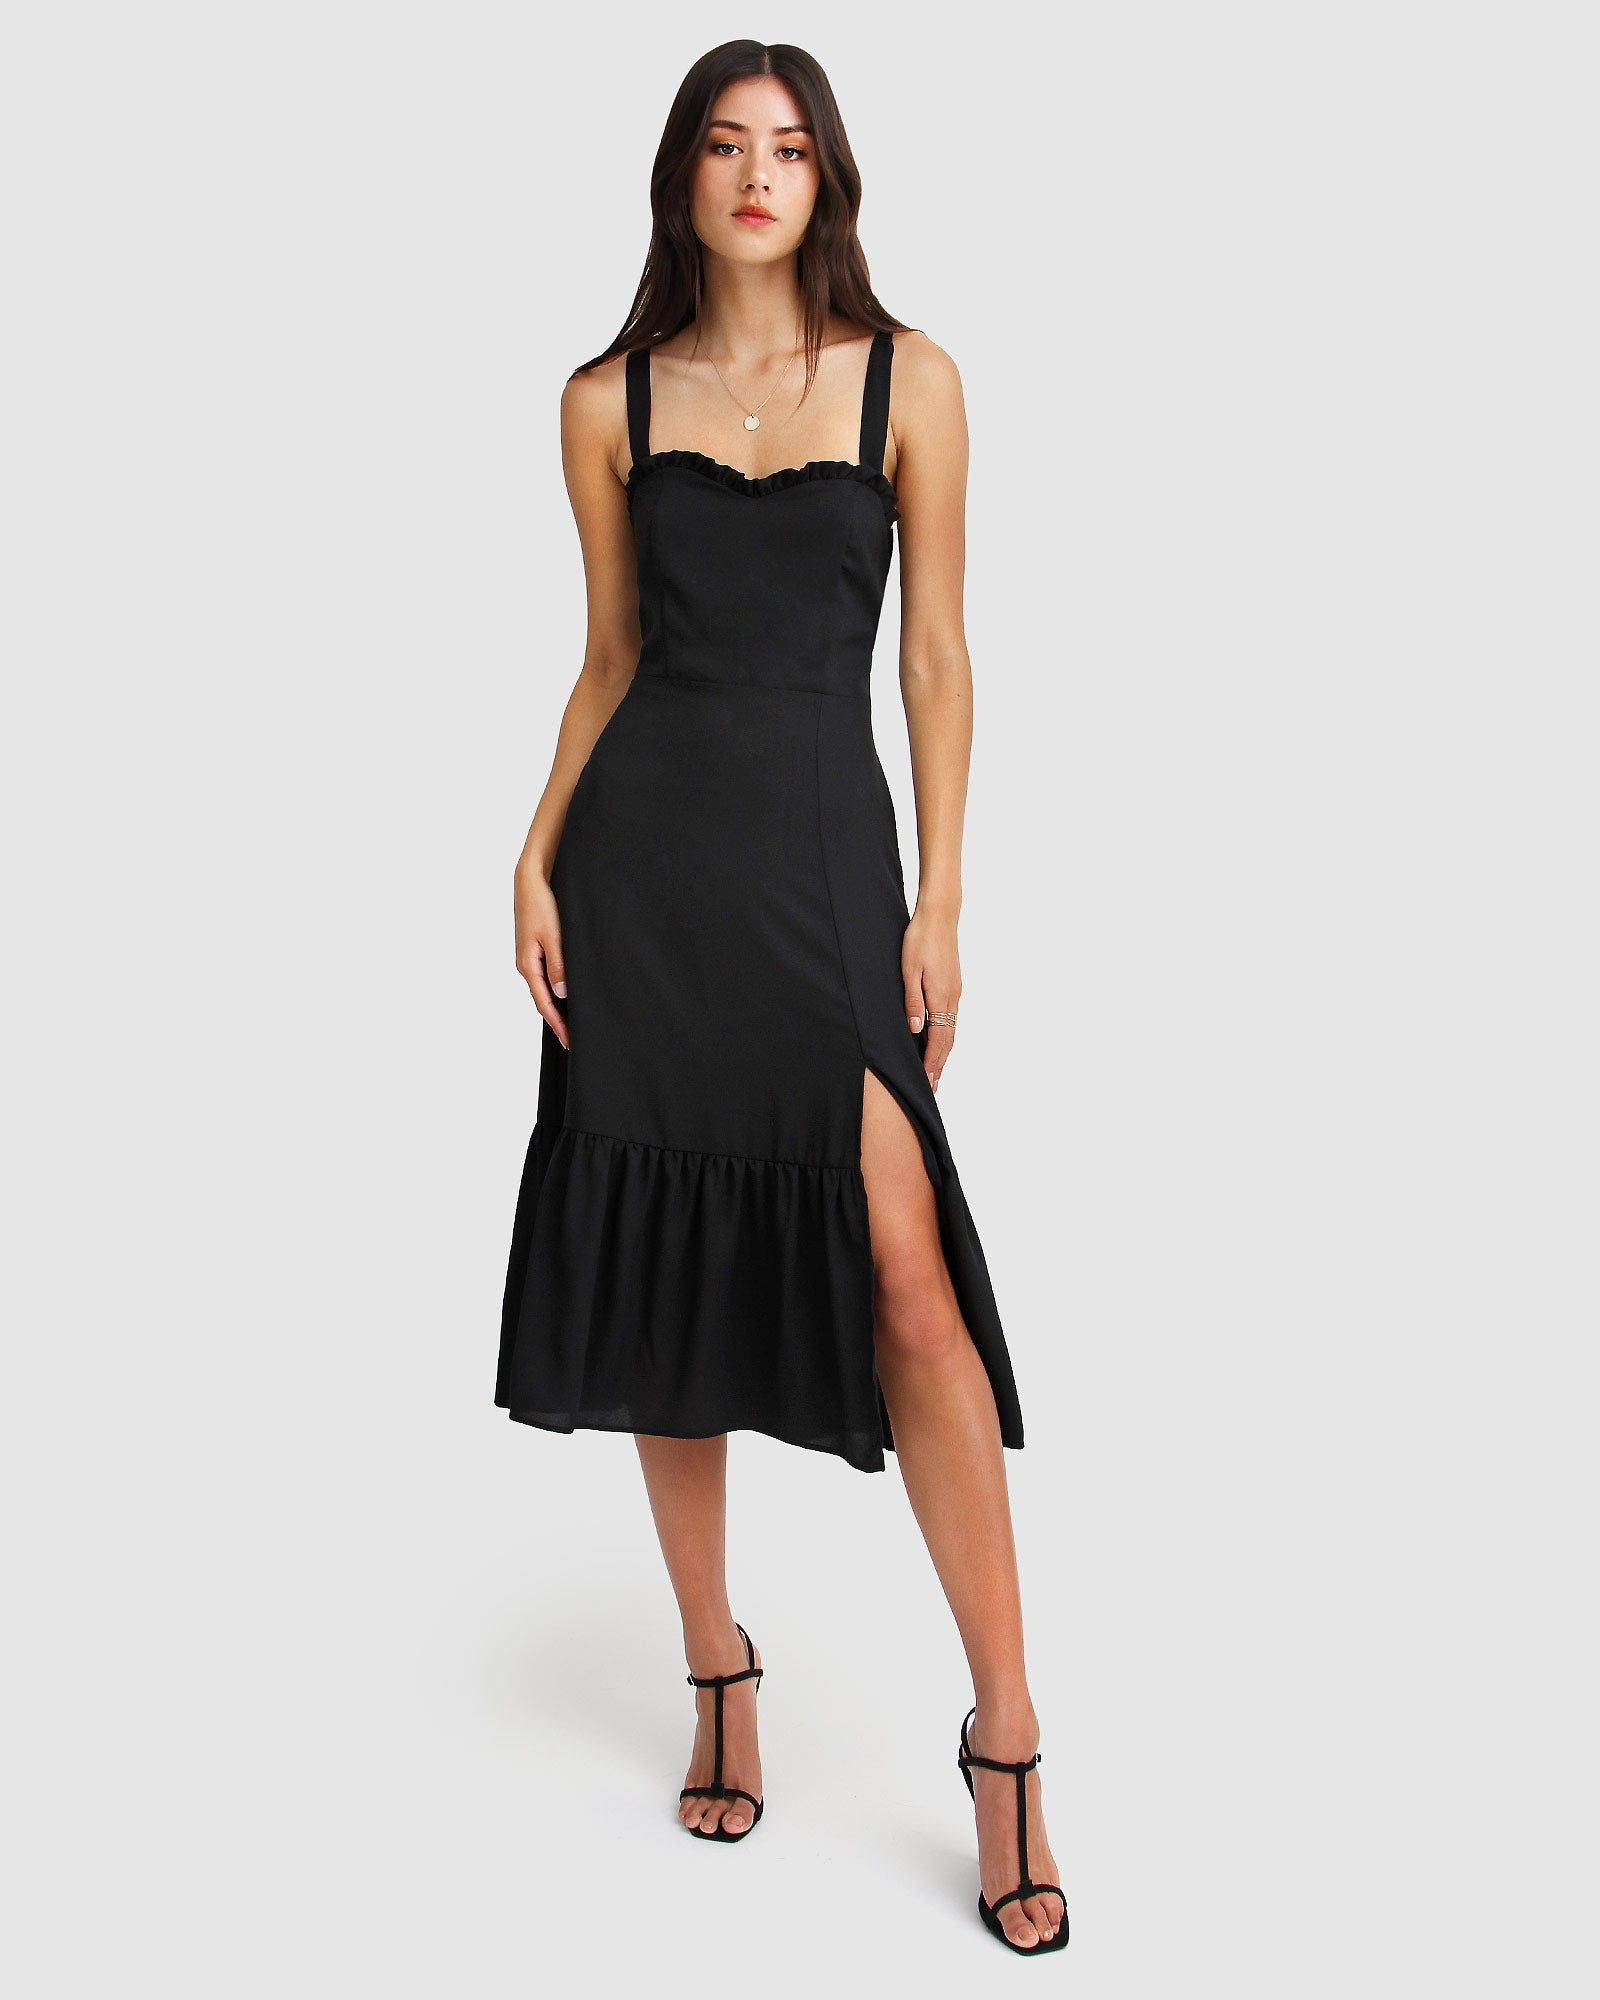 summer-storm-black-midi-dress-front-.jpg